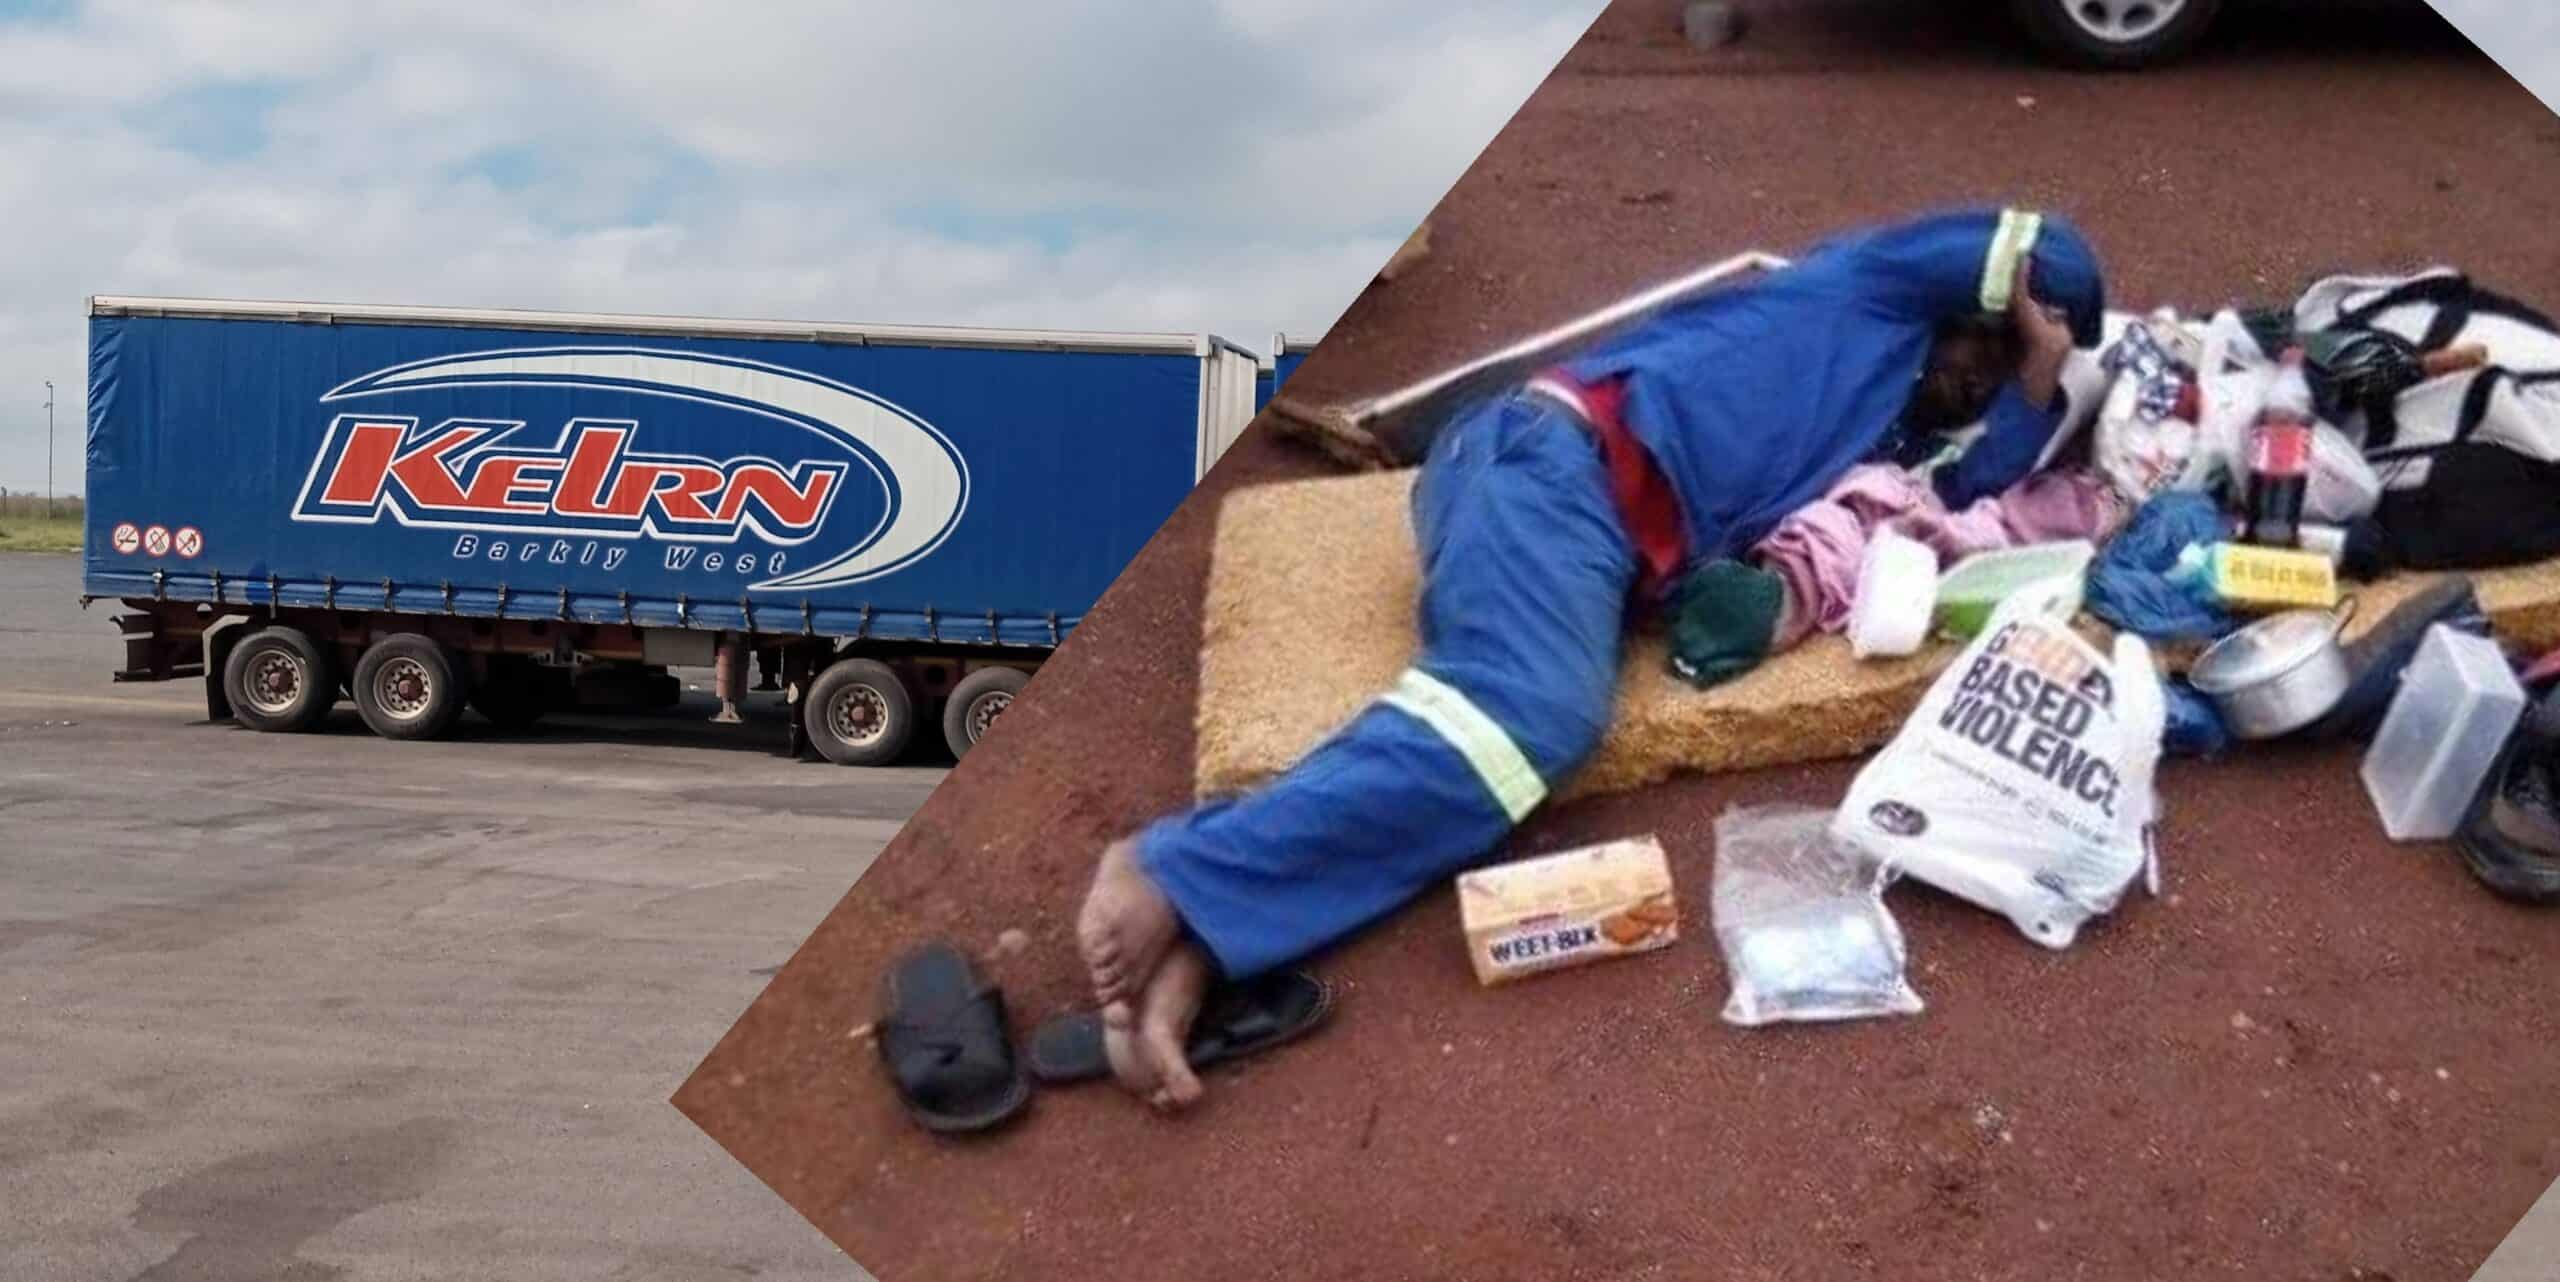 Sick Kelrn Vervoer truck driver neglected, made to sleep on the floor by his company